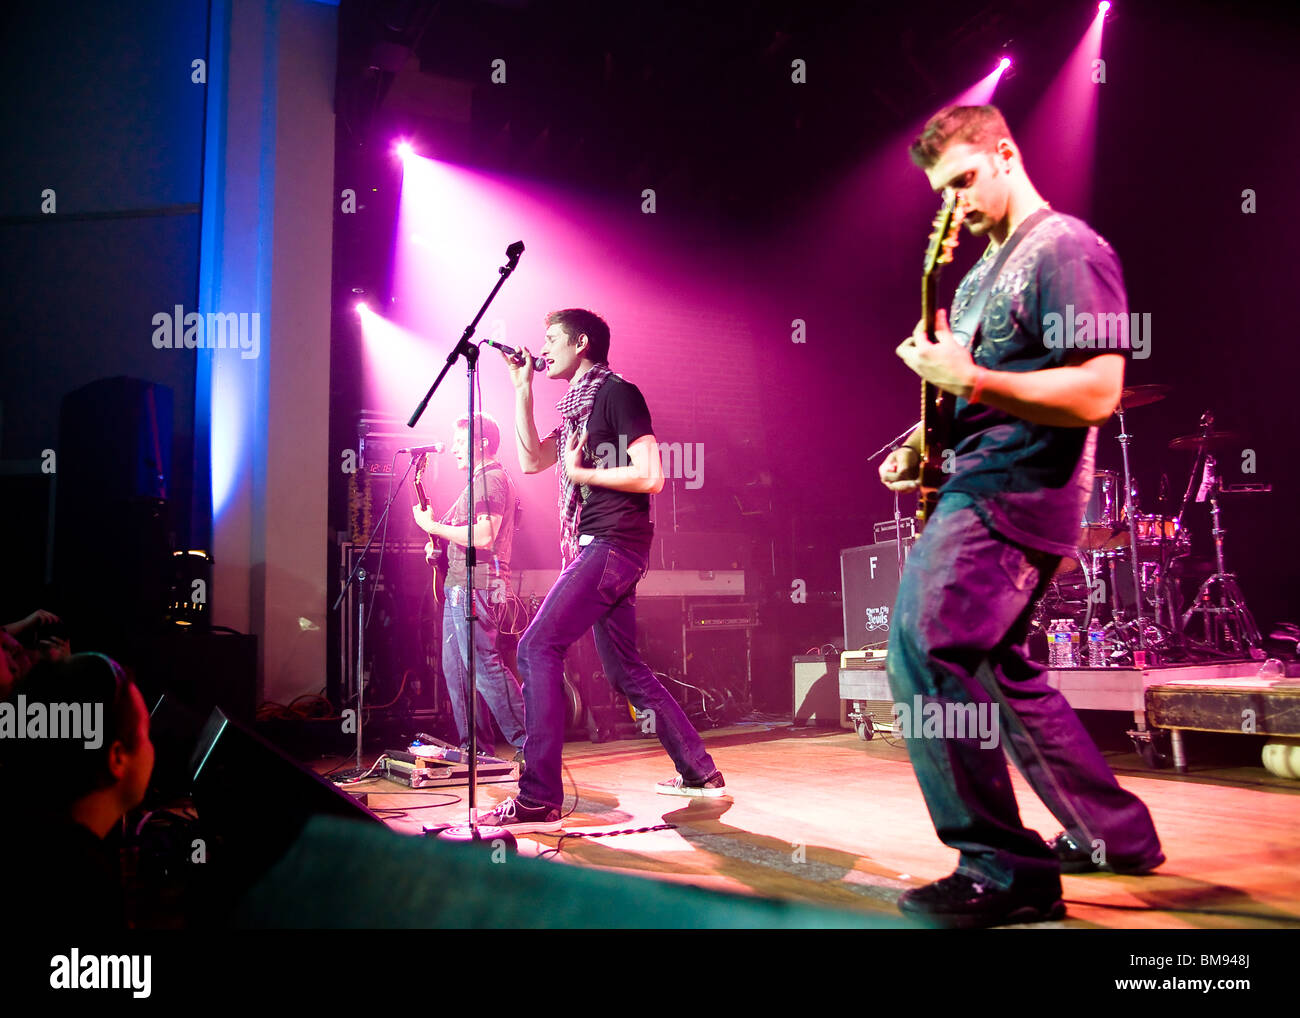 Rock band on stage - Stock Image